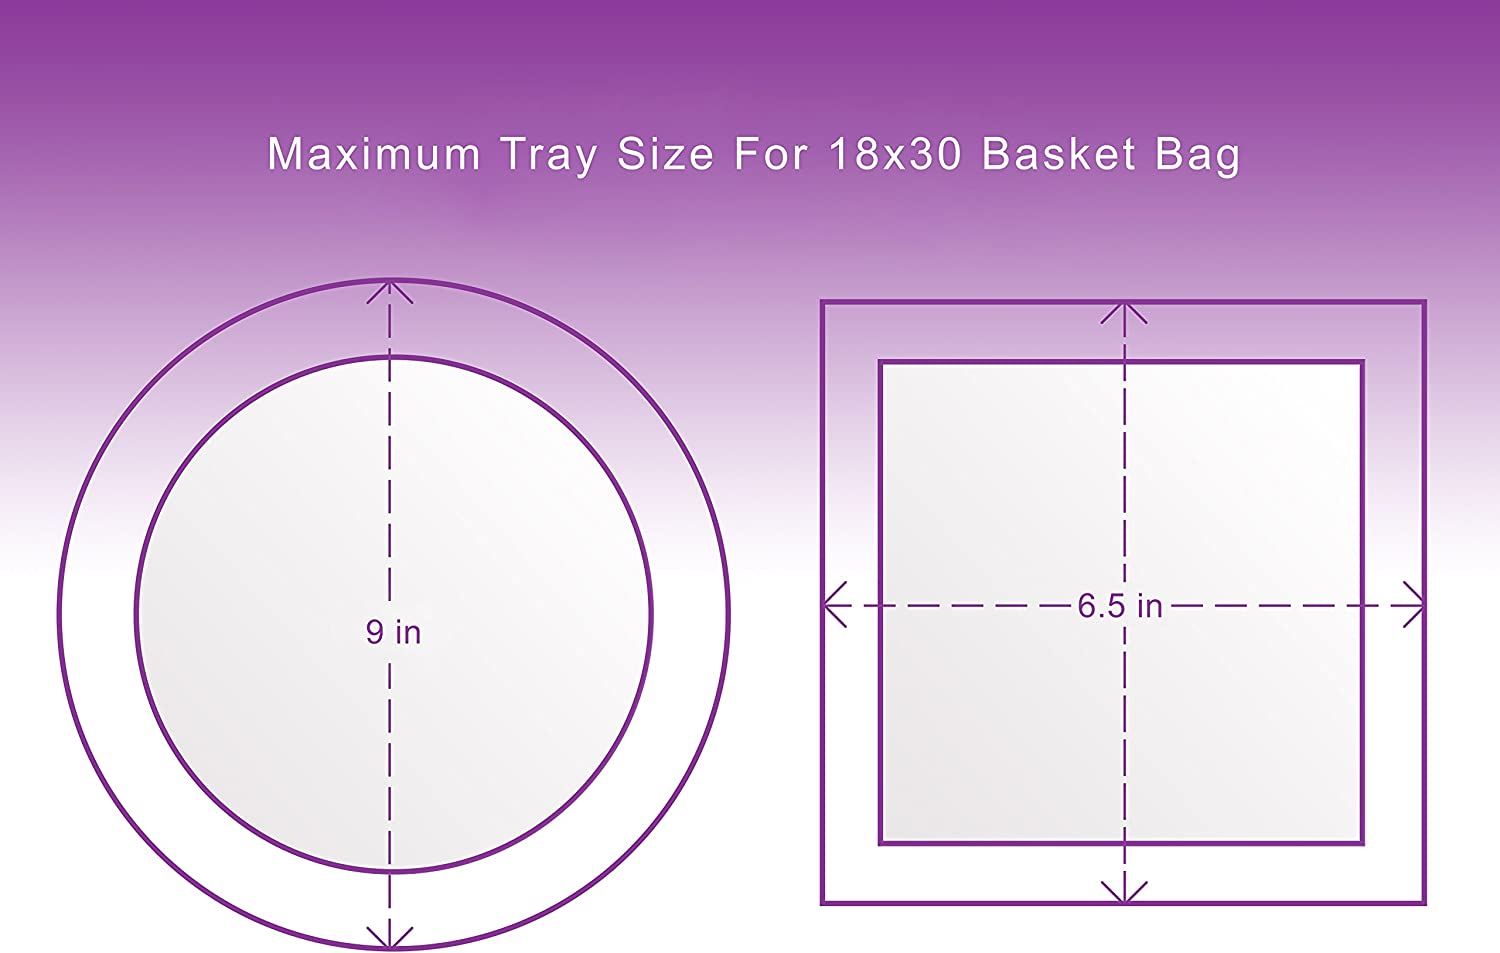 """Clear Basket Bags, 10 Pack, Clear Cellophane Wrap for Baskets & Gifts 18""""x 30"""" 1.5 Mil Thick (10): Health & Personal Care"""